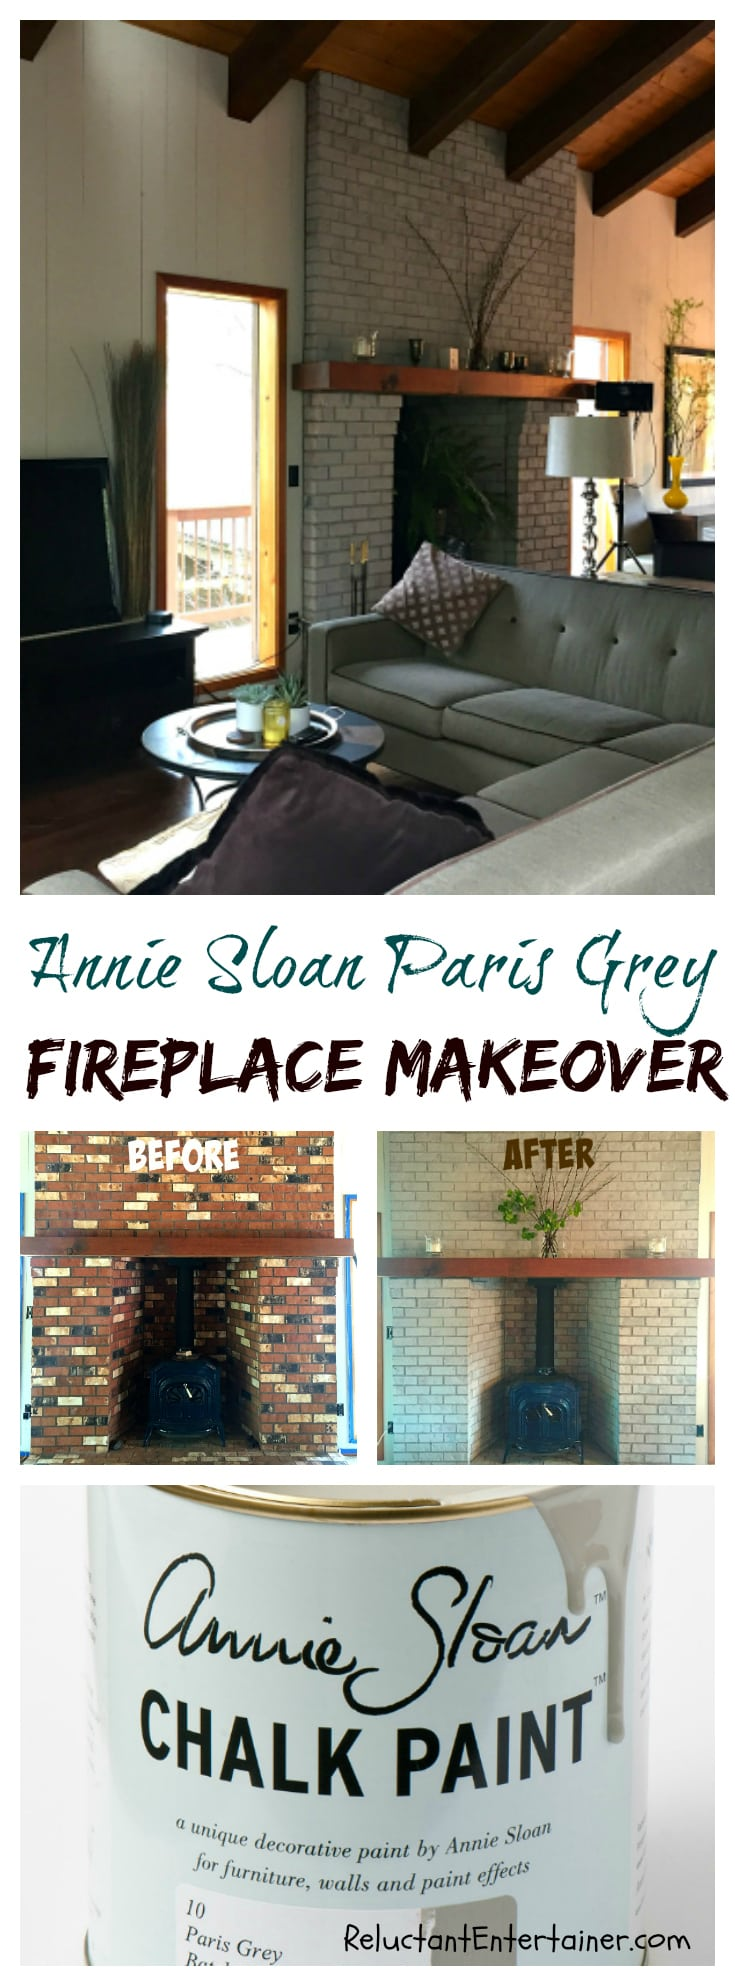 Annie Sloan Paris Grey Fireplace Makeover at ReluctantEntertainer.com